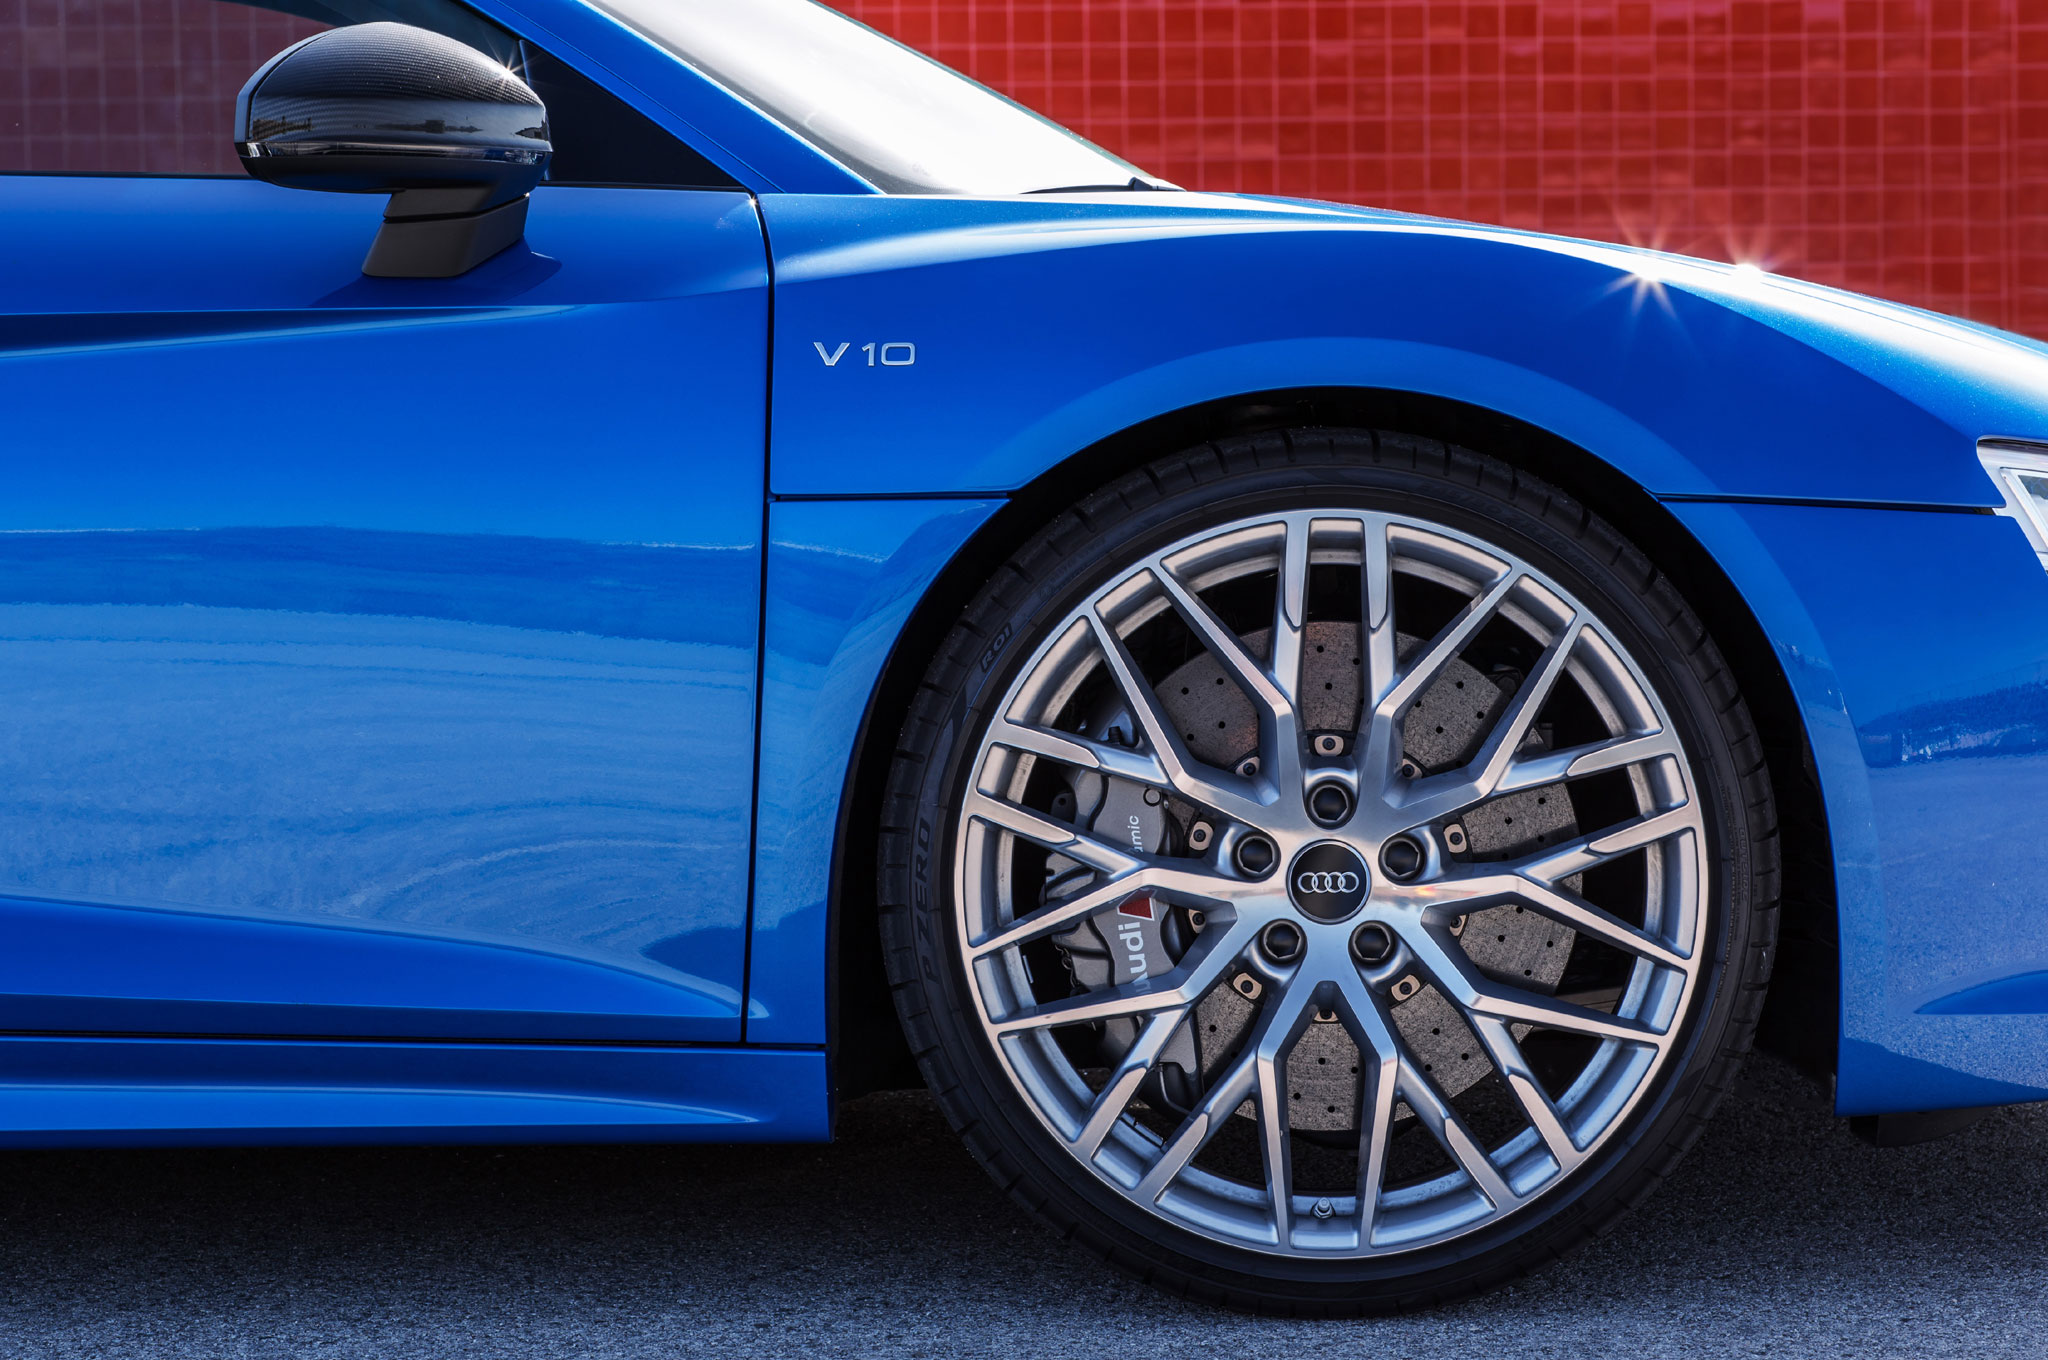 golf 4 with r8 audi rims wiring diagram Golf 4 With R8 Audi Rims golf 4 with r8 audi rims all diagram